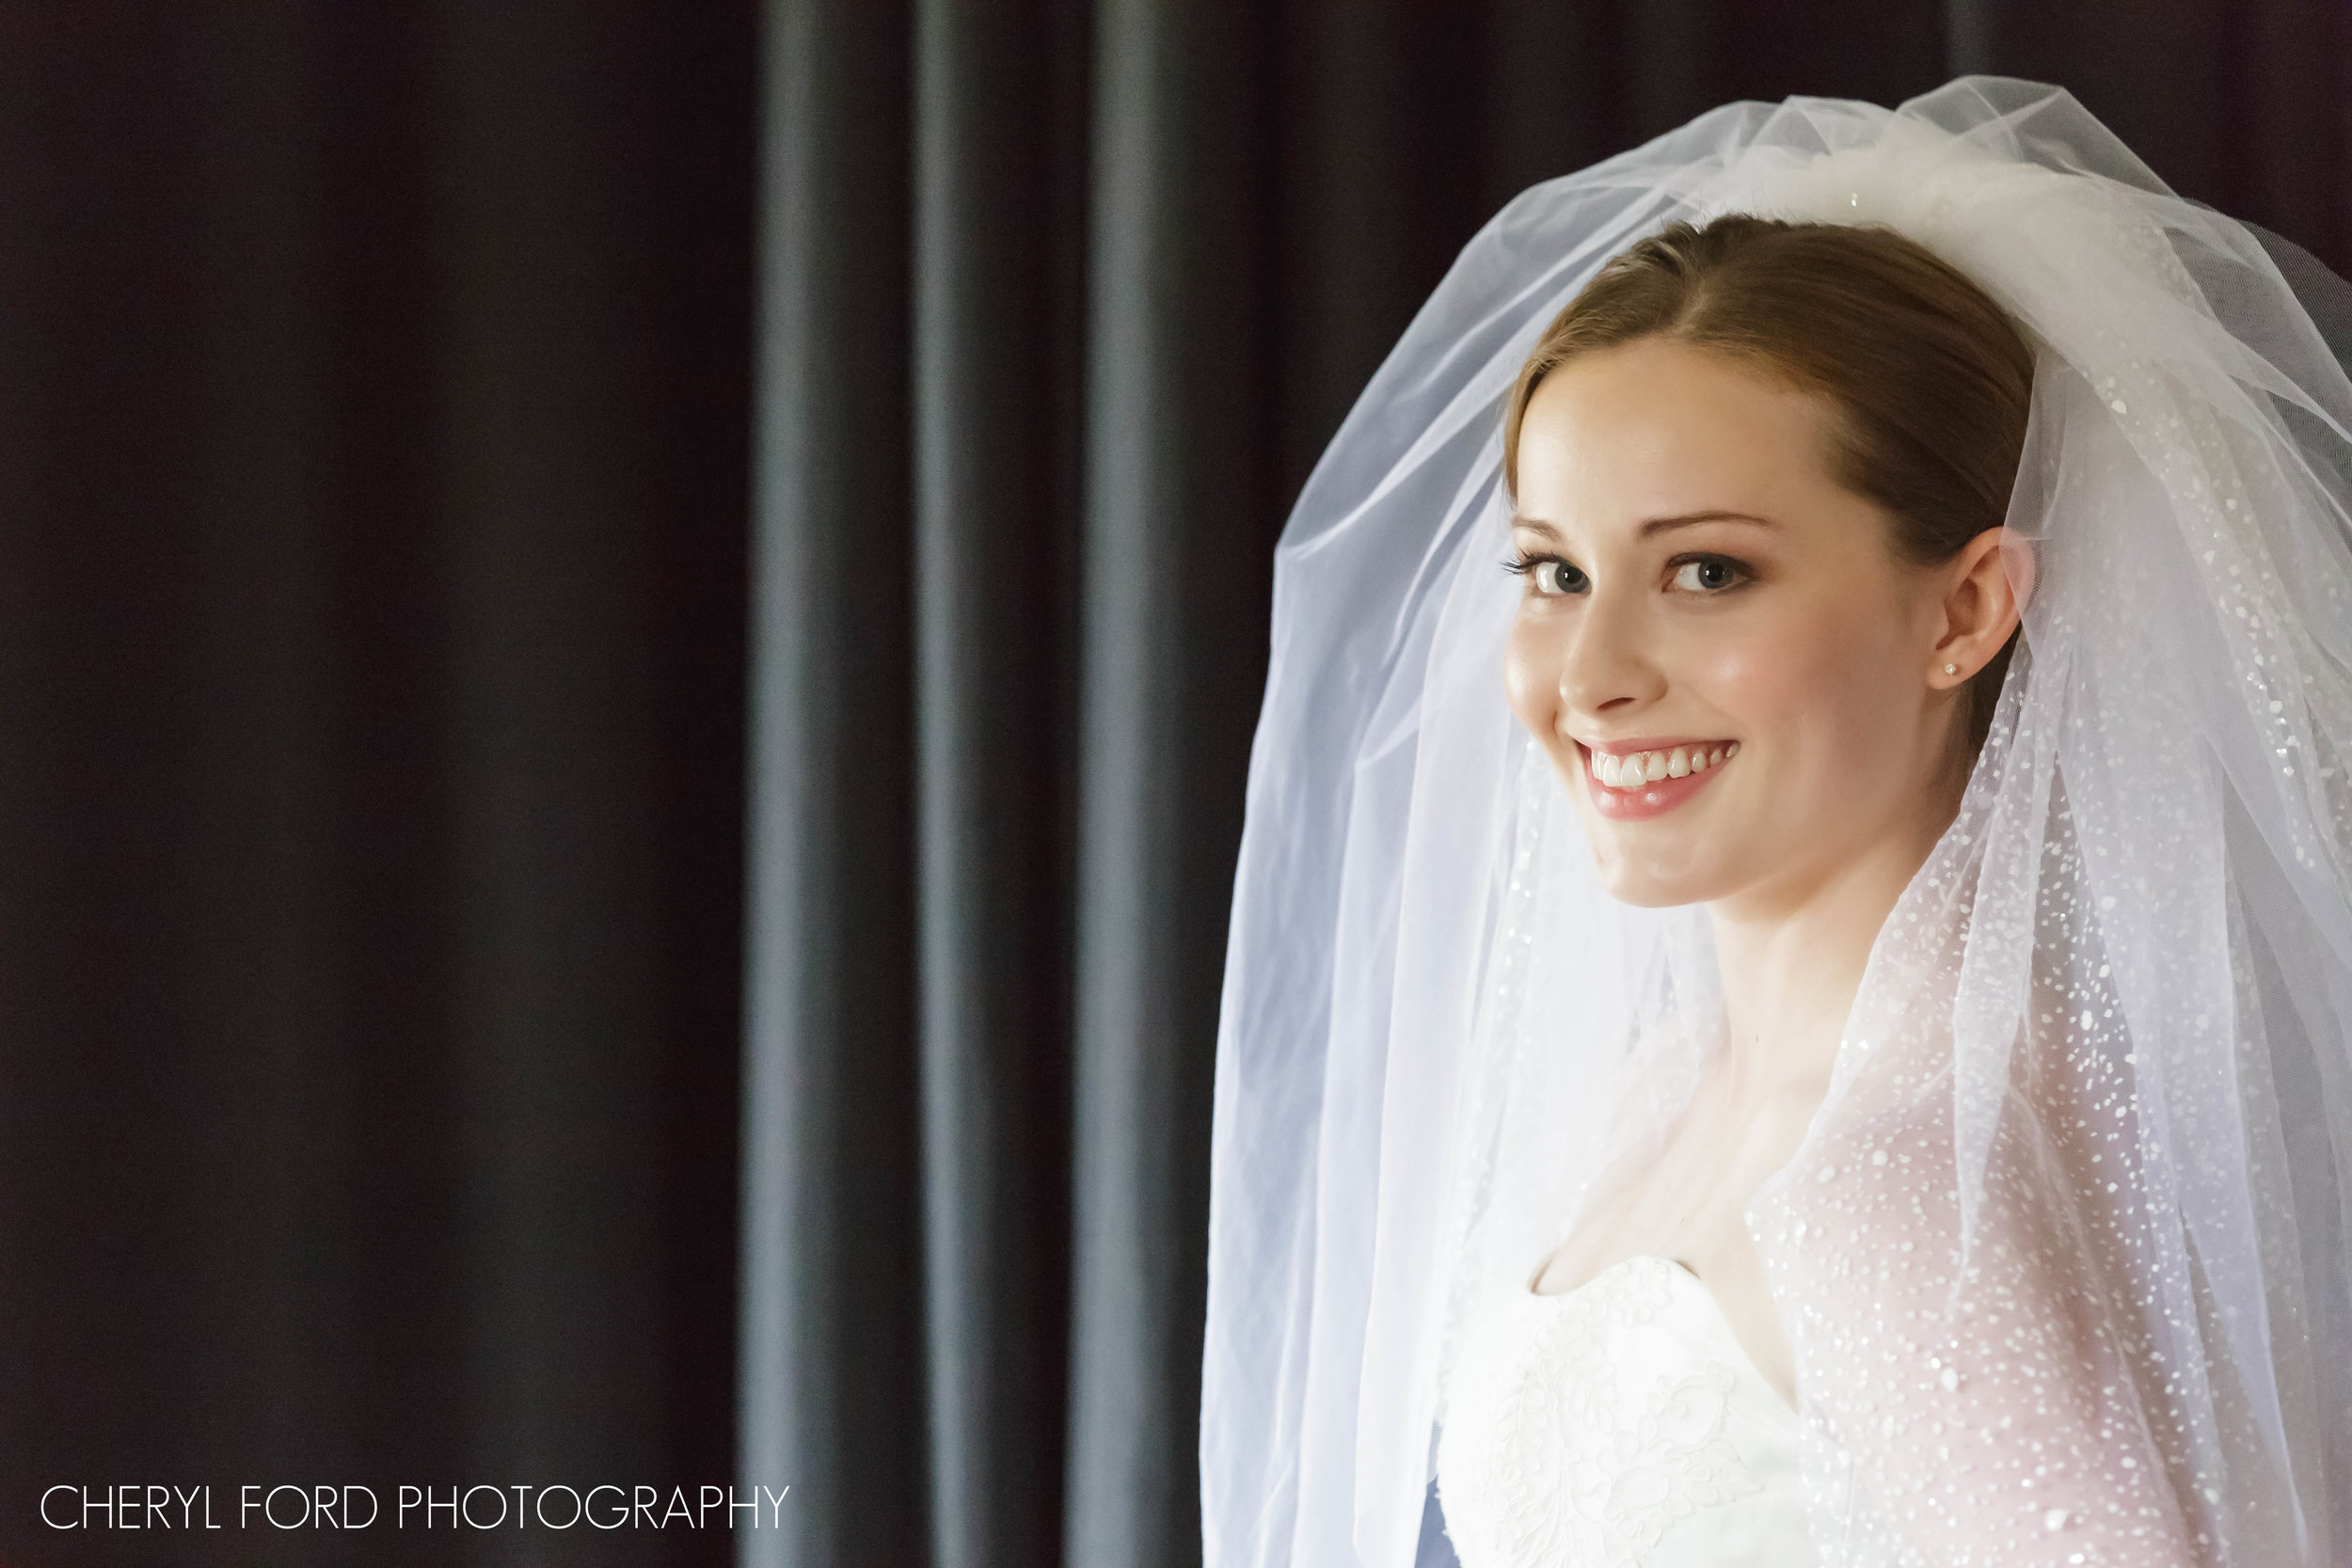 BRIDALMAKEUP PACKAGE$400.00 - with trial